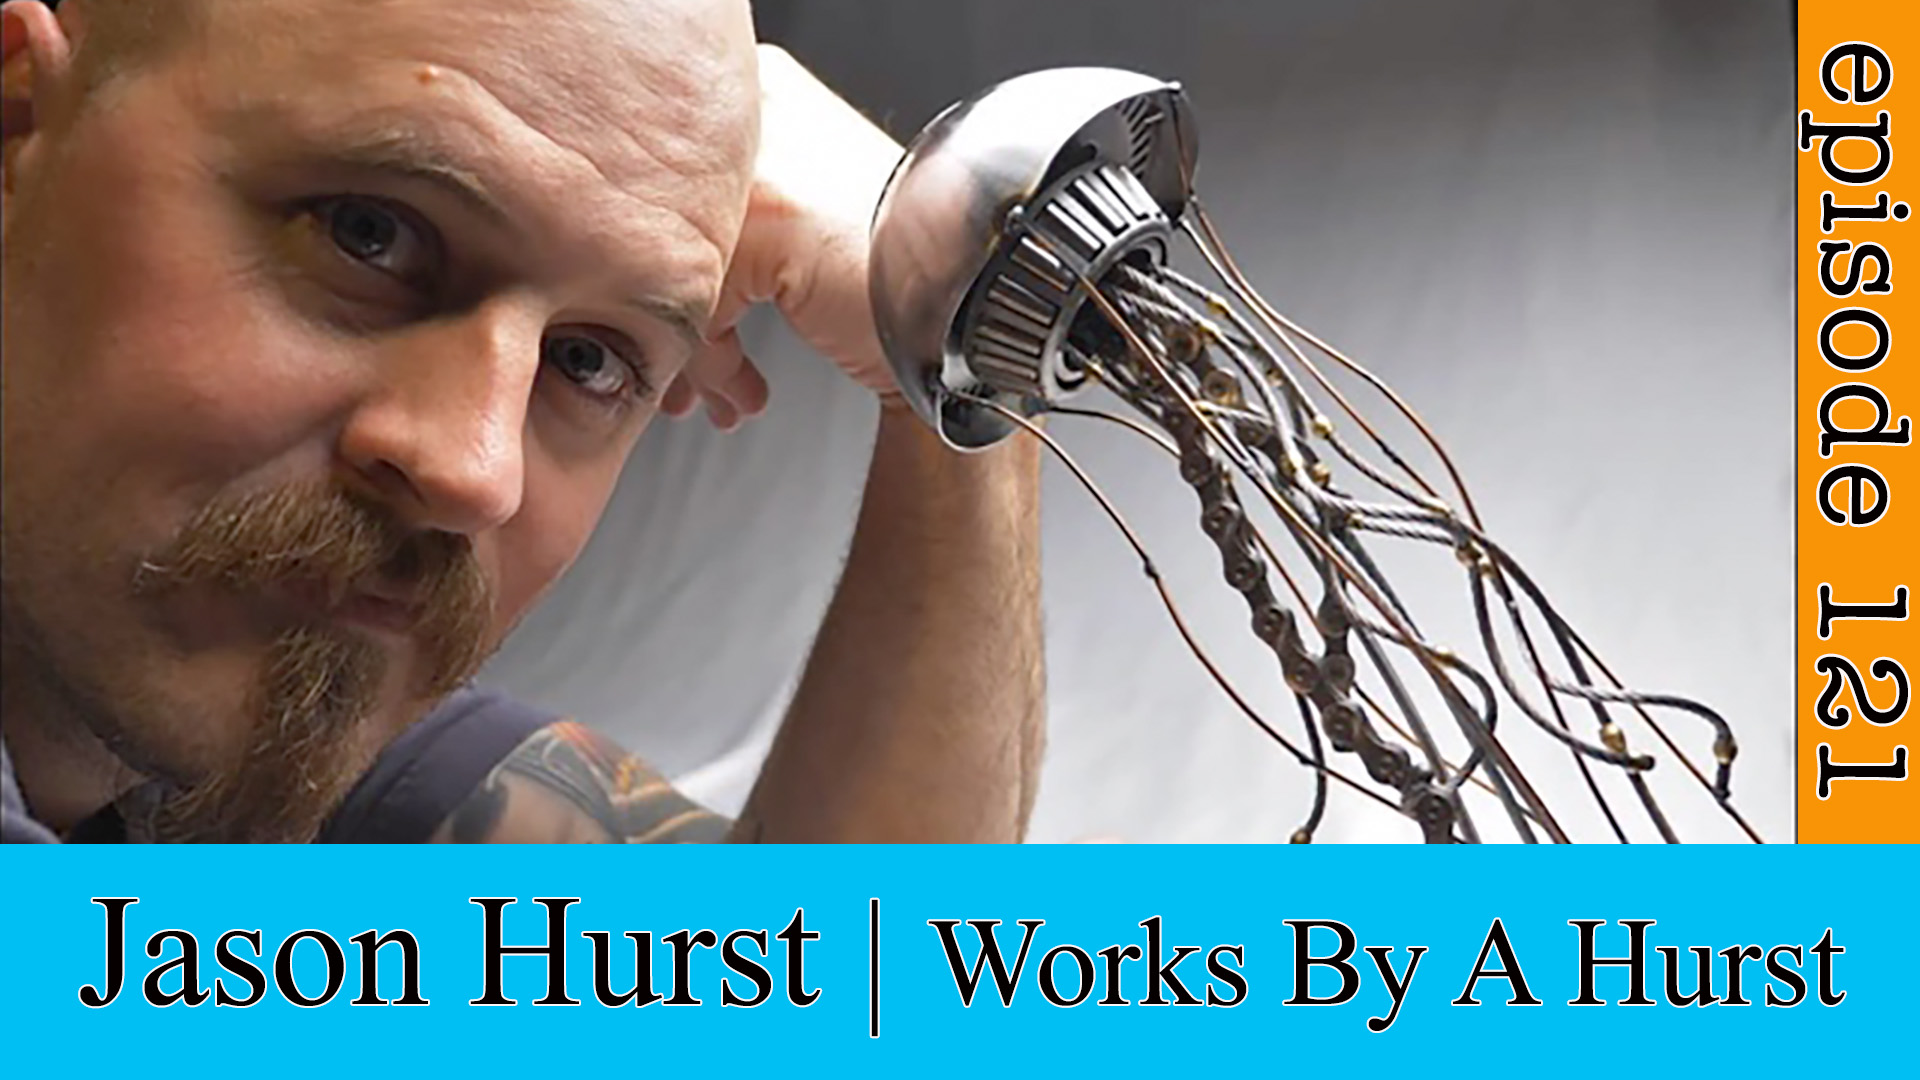 The Maker Minded Episode 121: Jason Hurst | Works By A Hurst